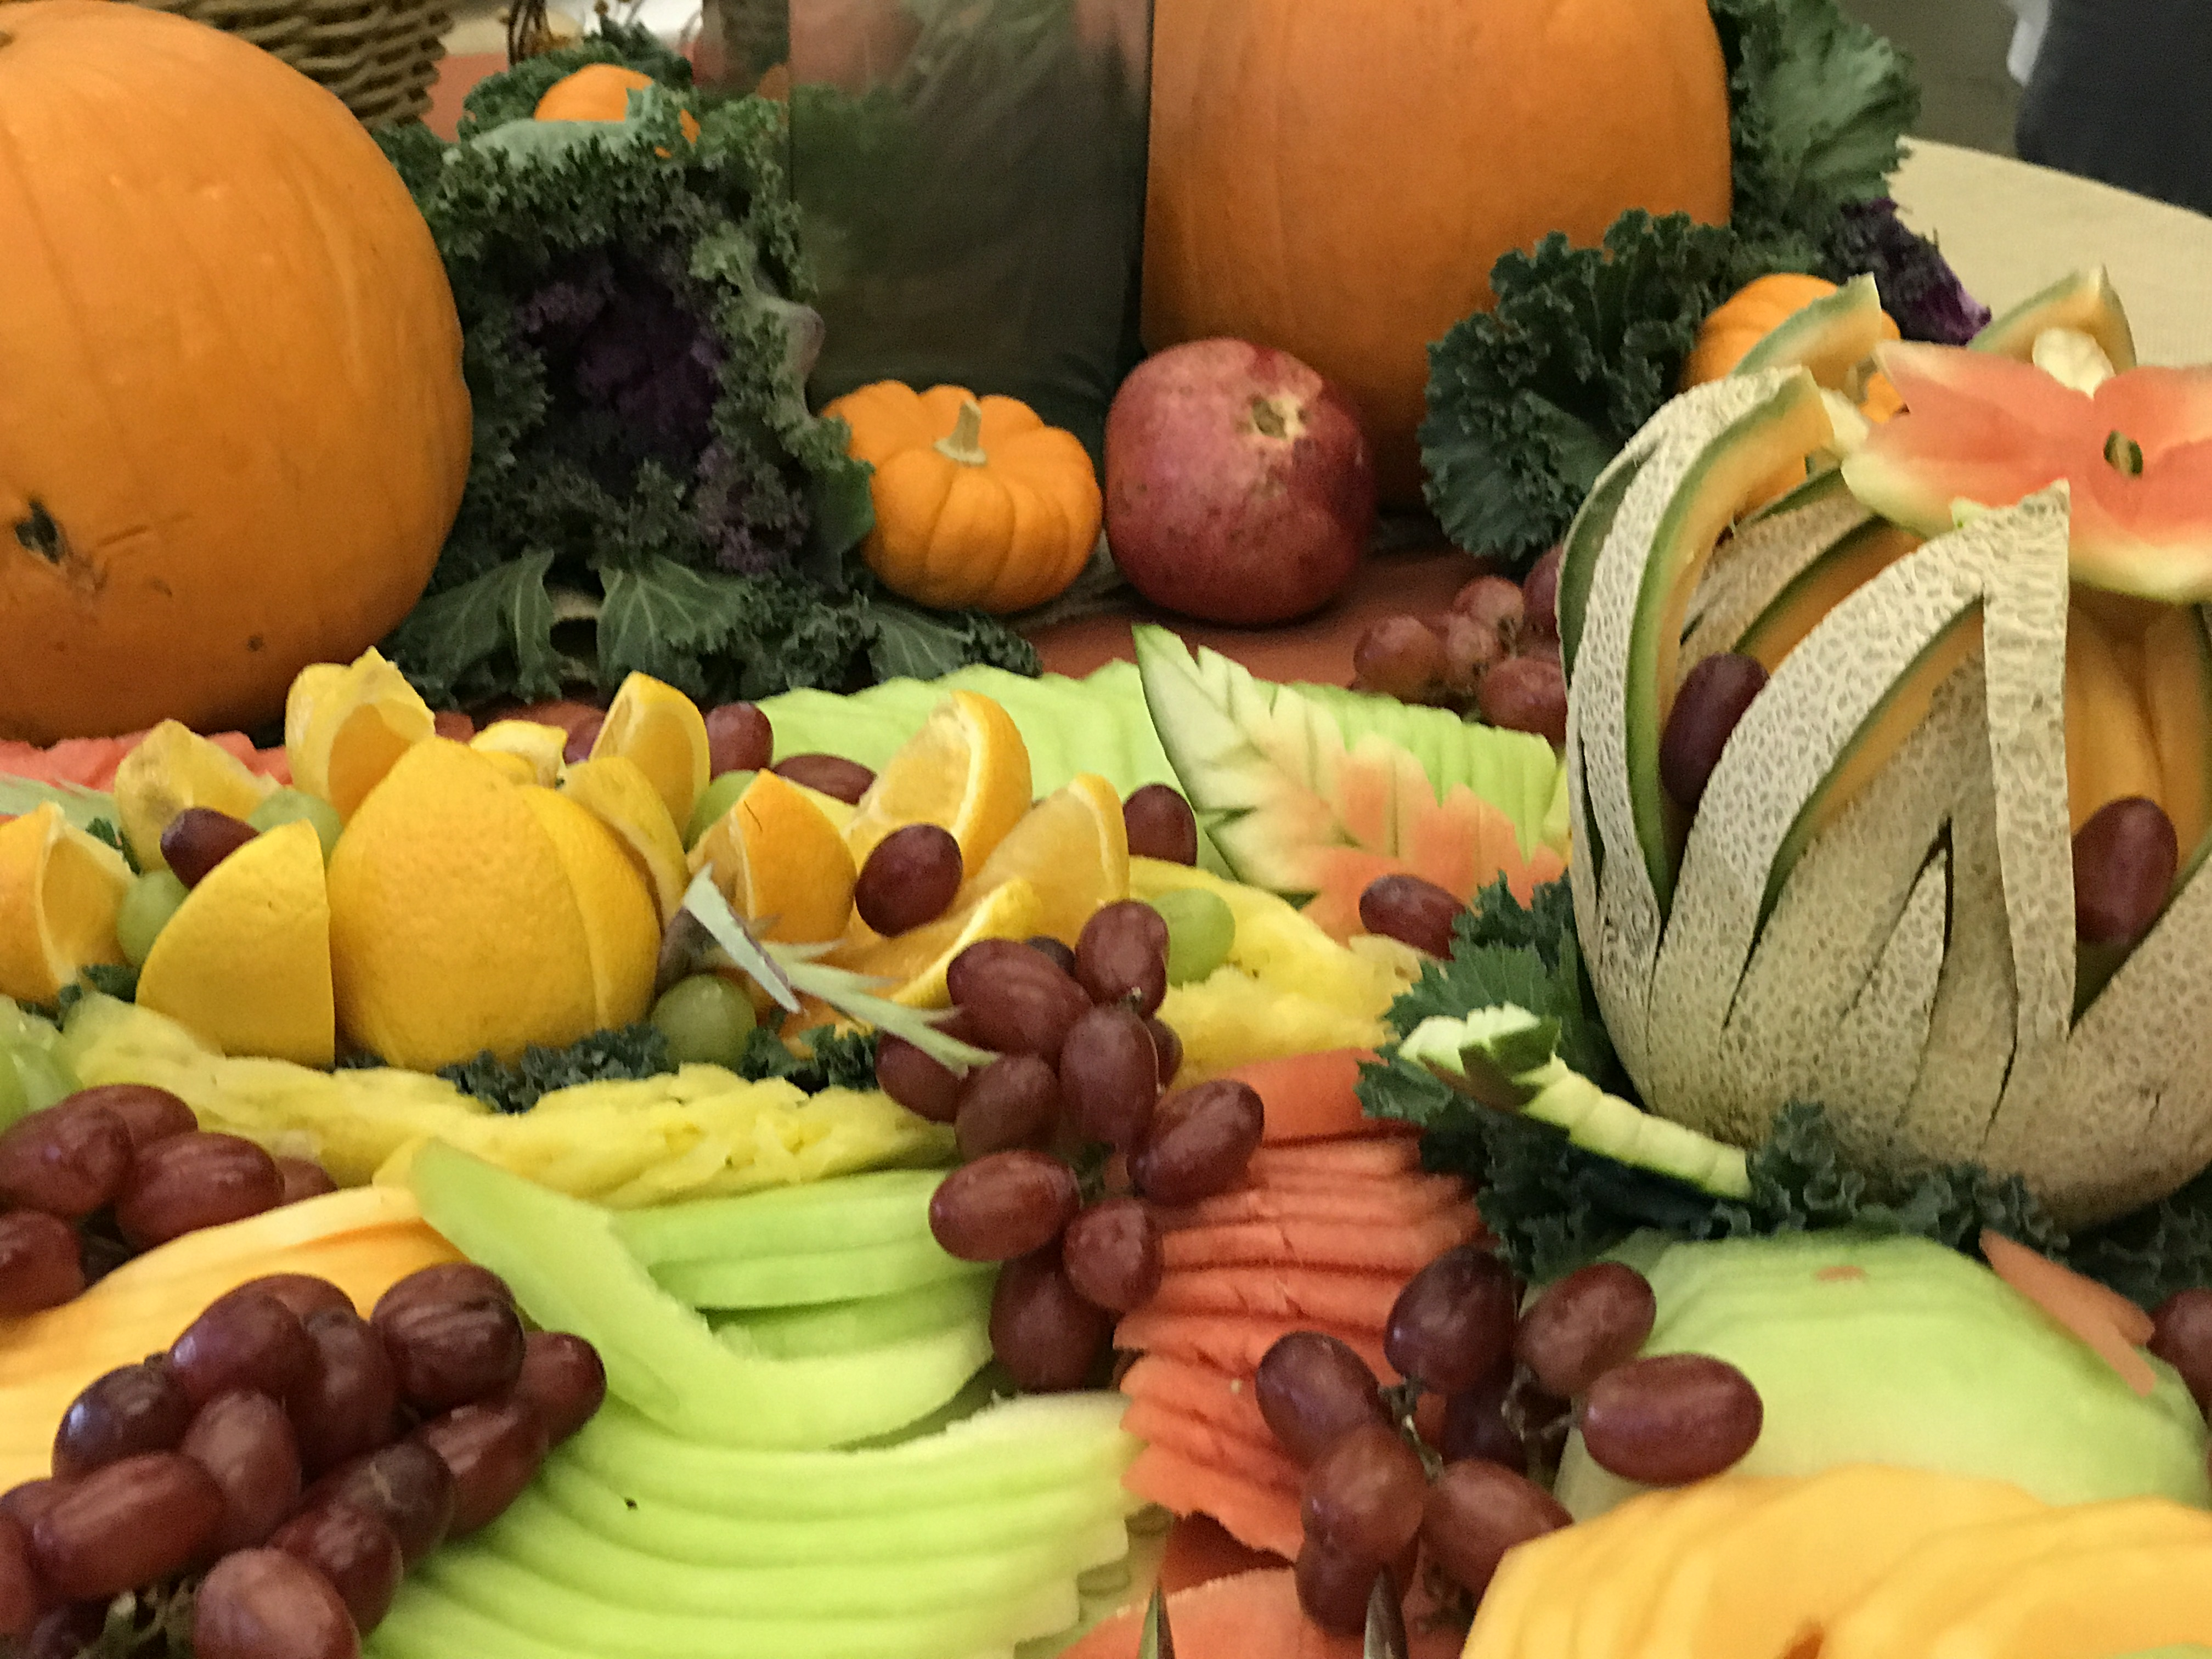 Fruit brought by attendees are arranged and cut in an artistic fashion for display and enjoyment on Wednesday, Oct. 18, 2017. Photo by Diane Carter.